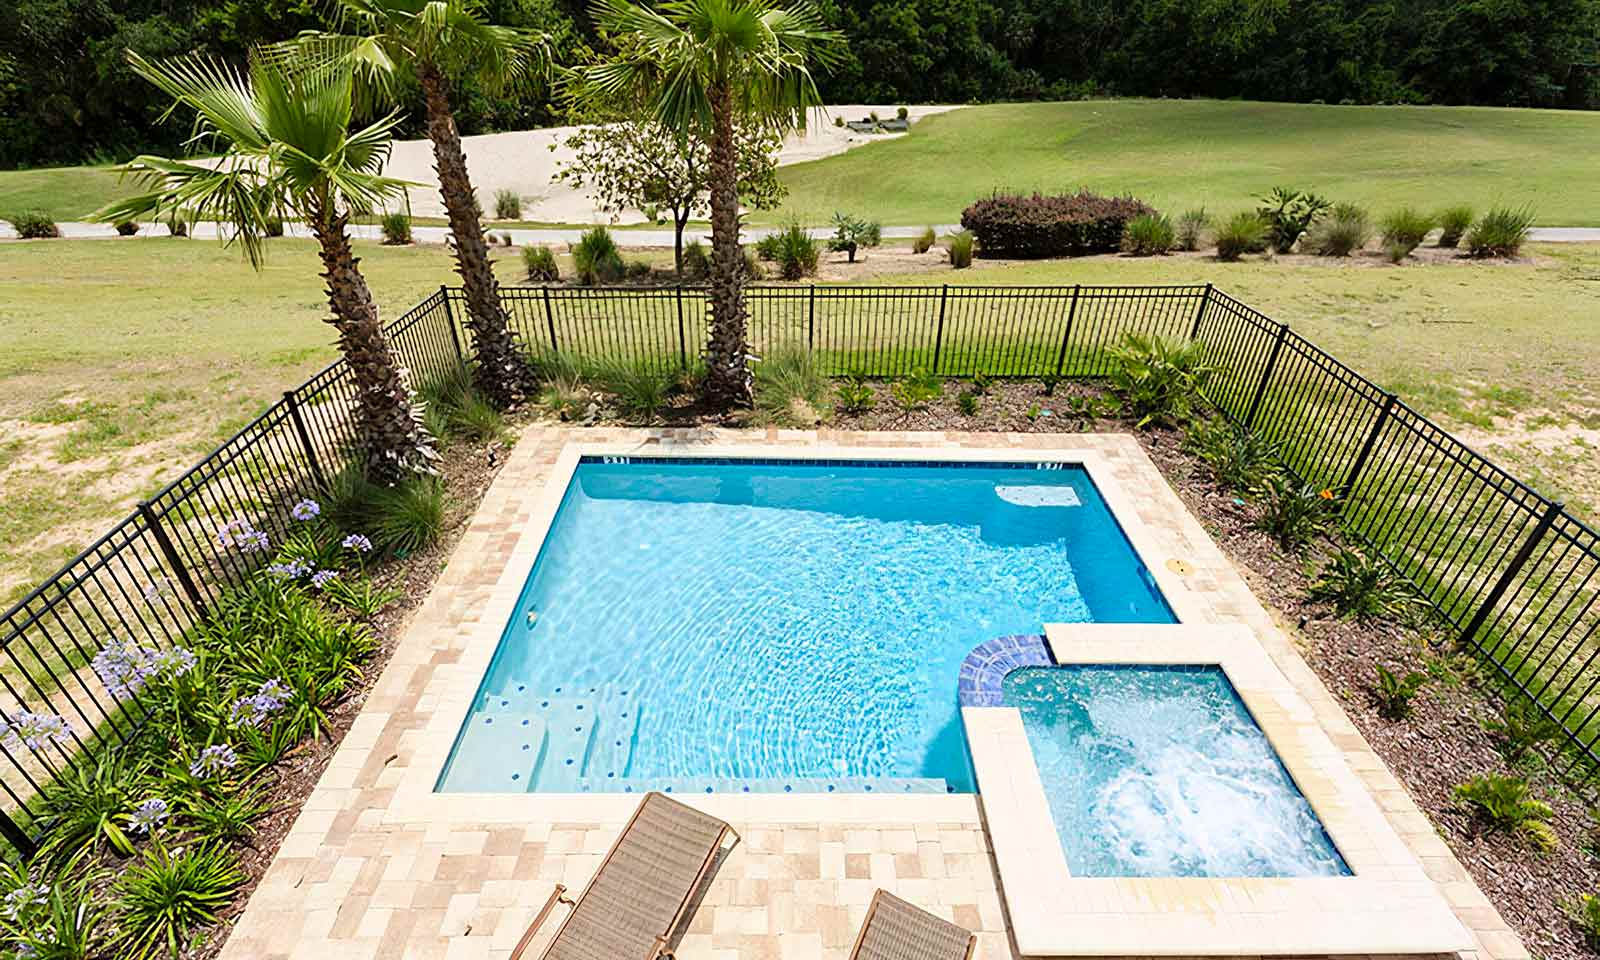 [amenities:Pool-and-Spa:2] Pool and Spa